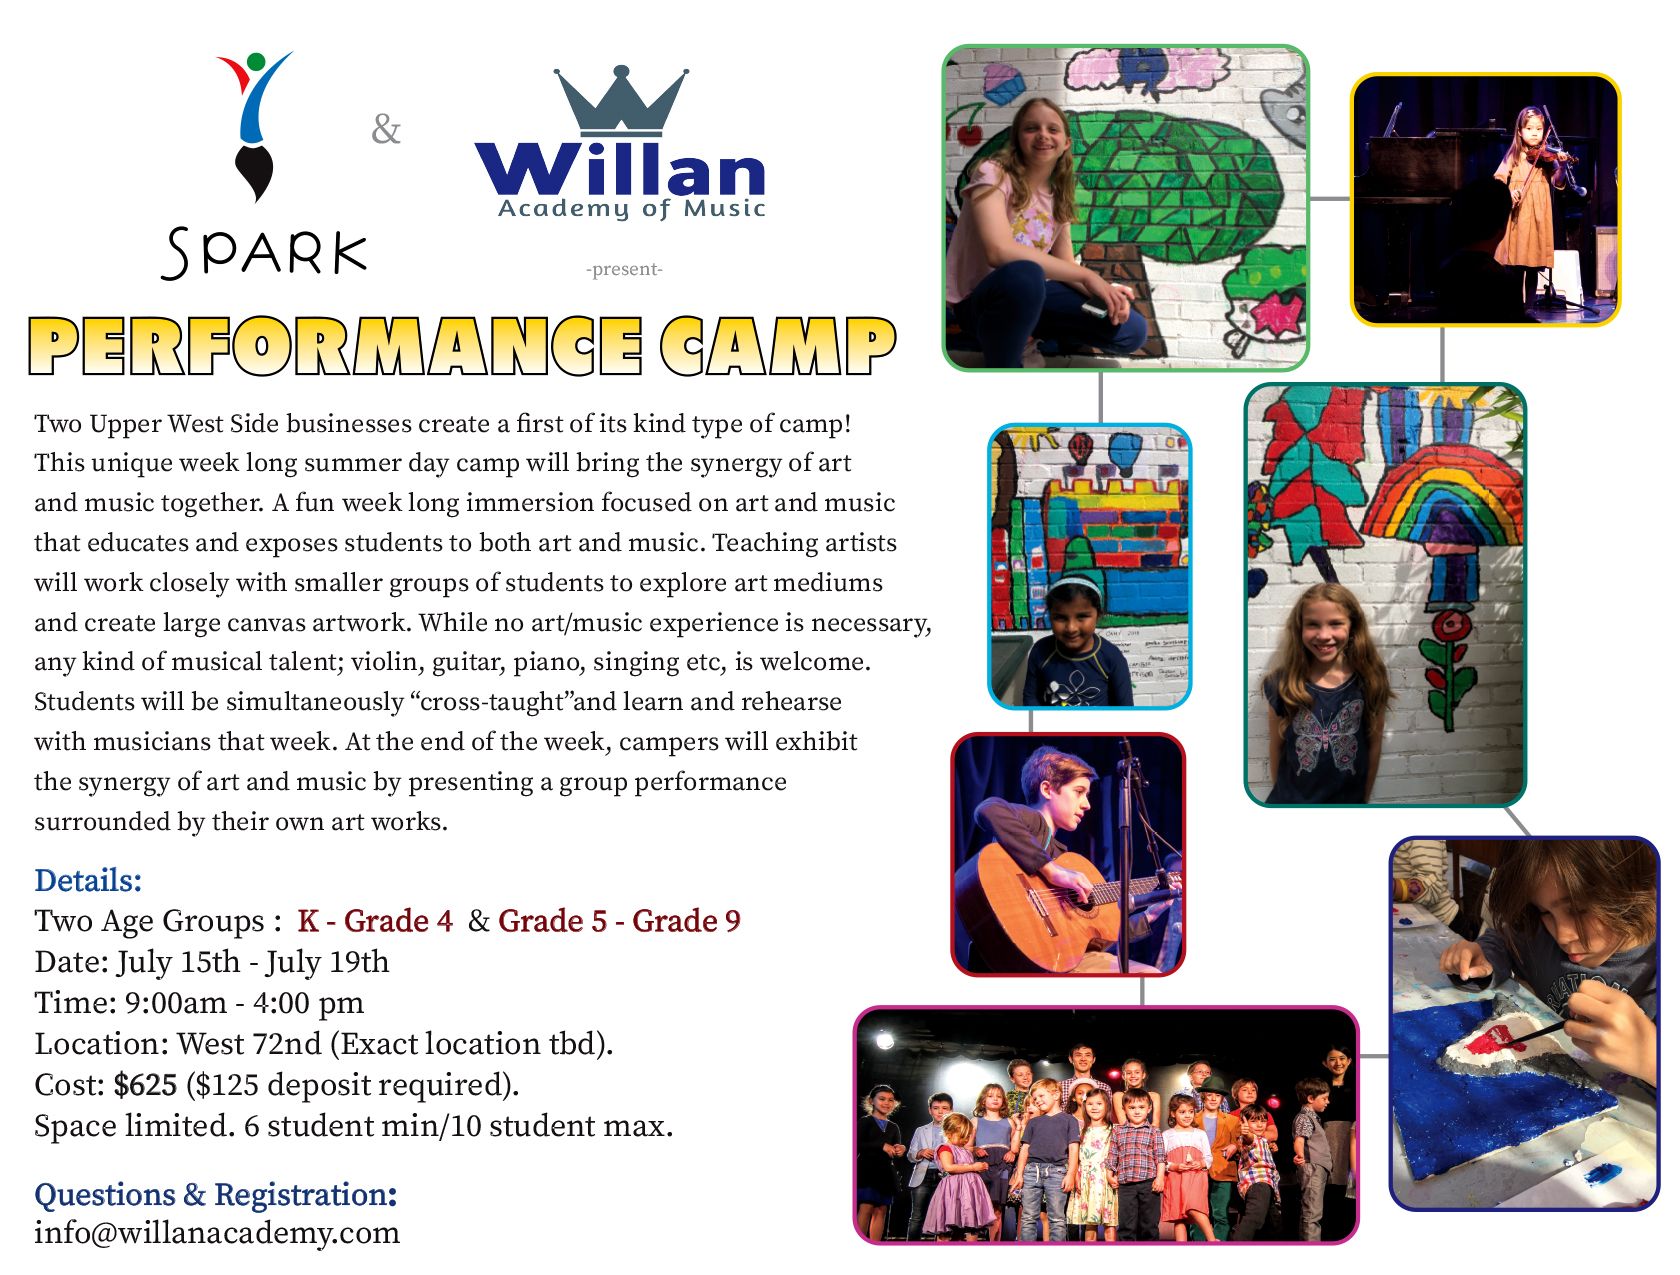 Willan academy of music